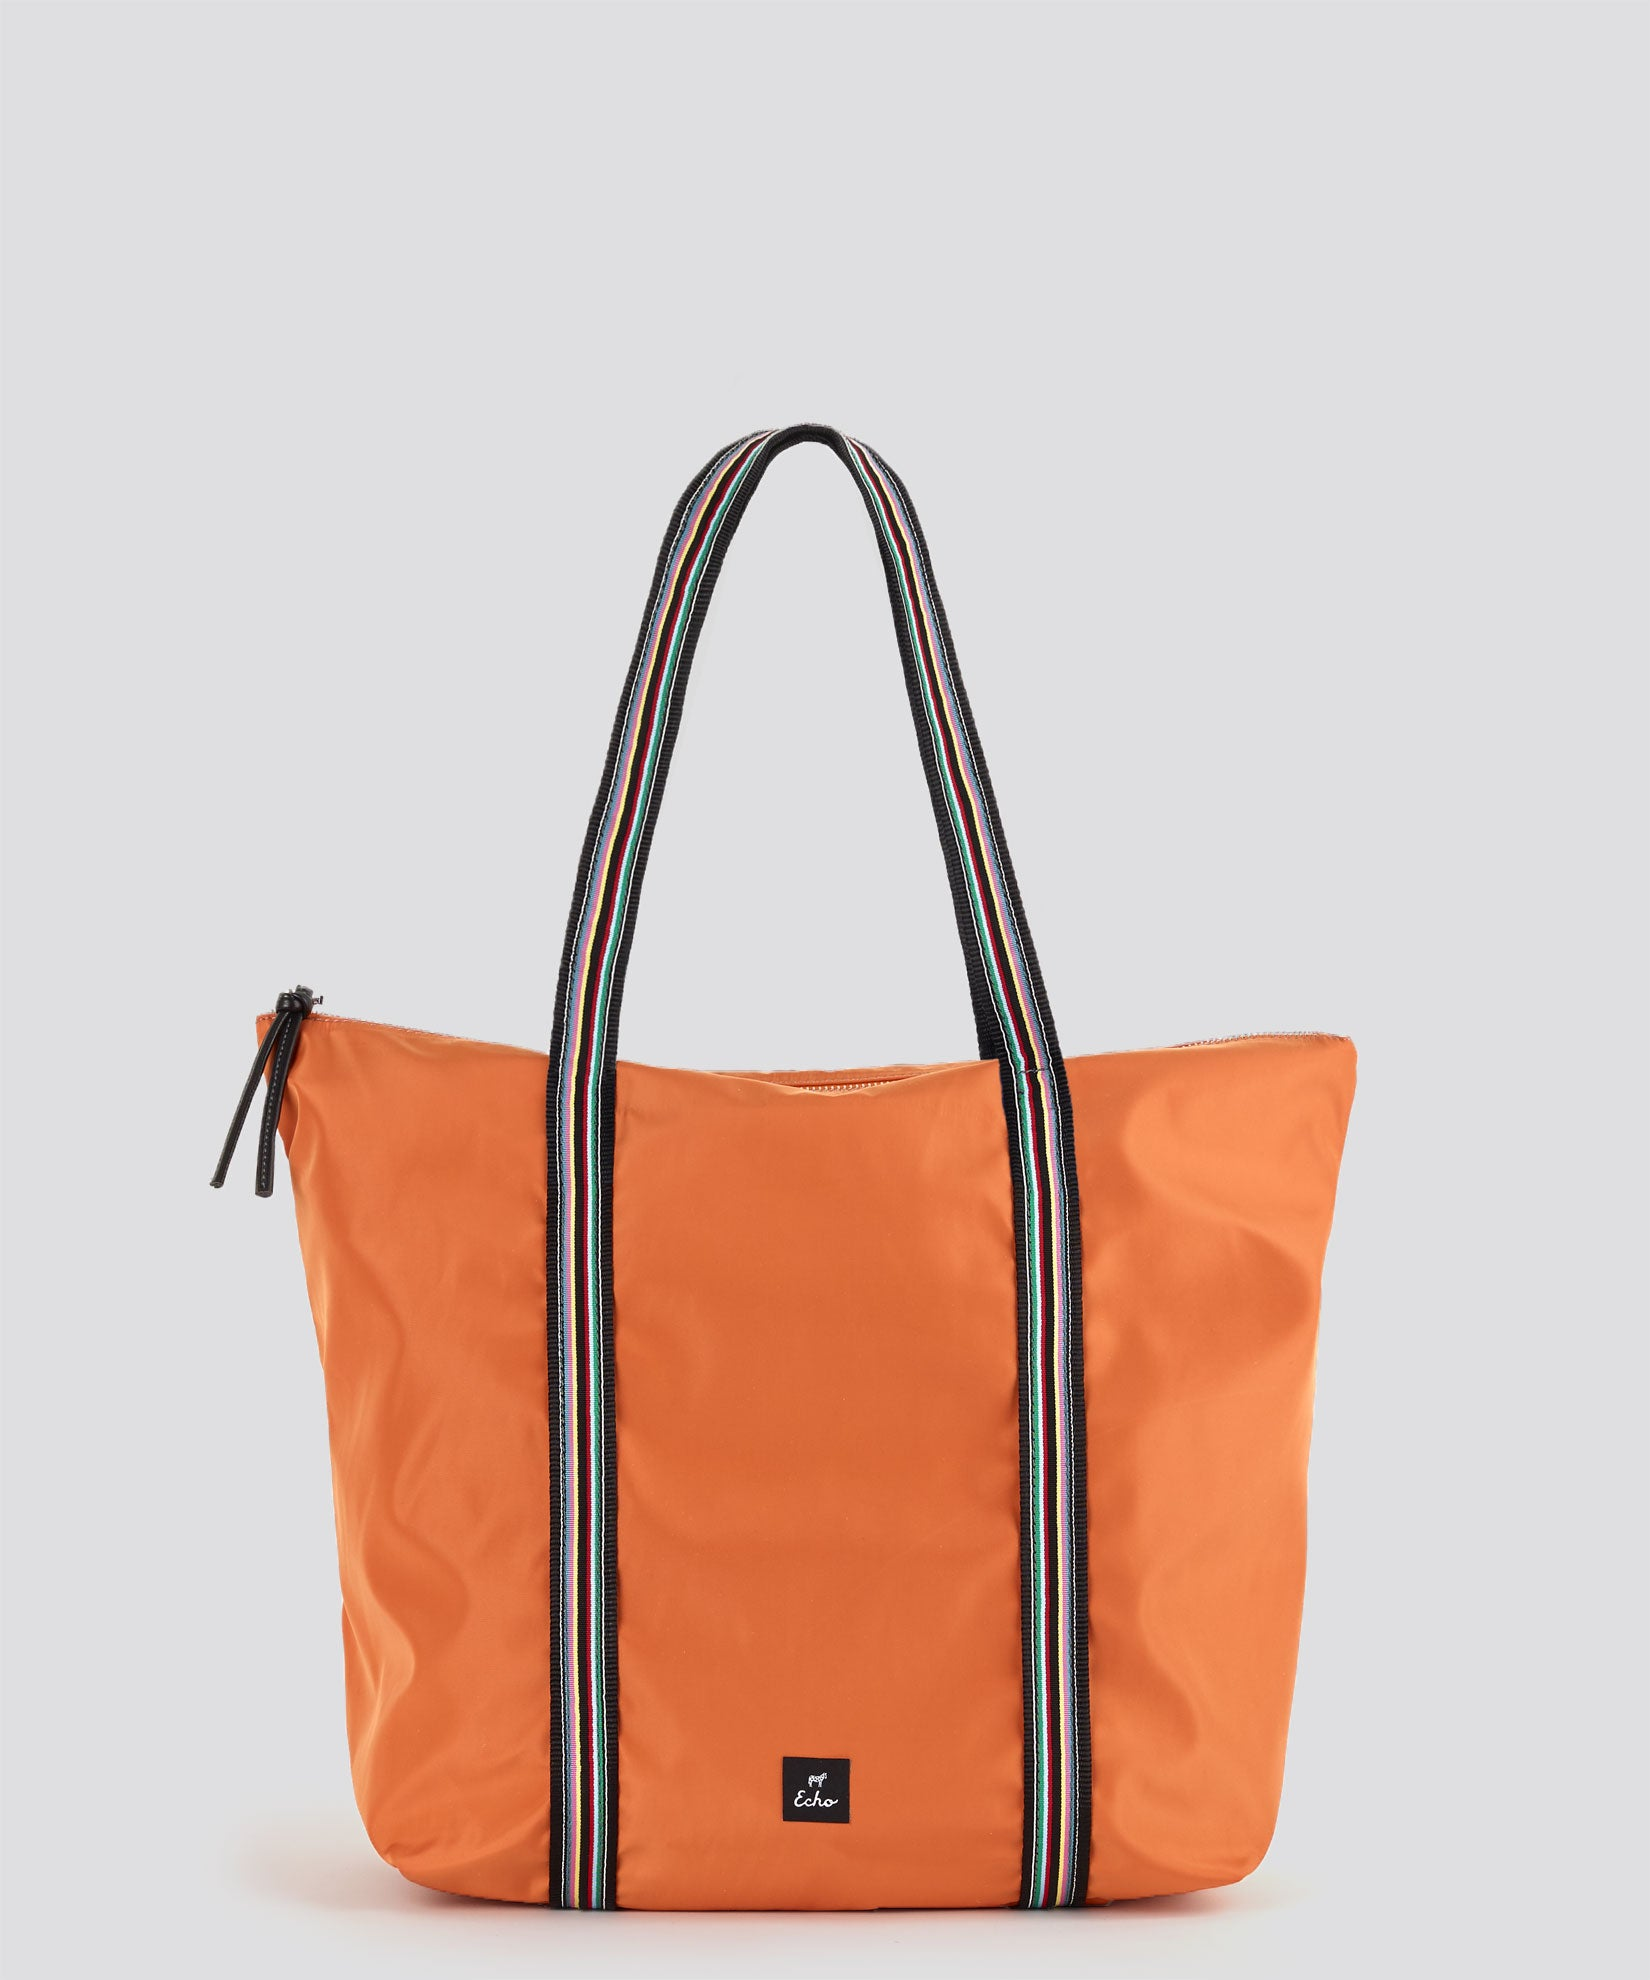 Sunset - London Errand Tote